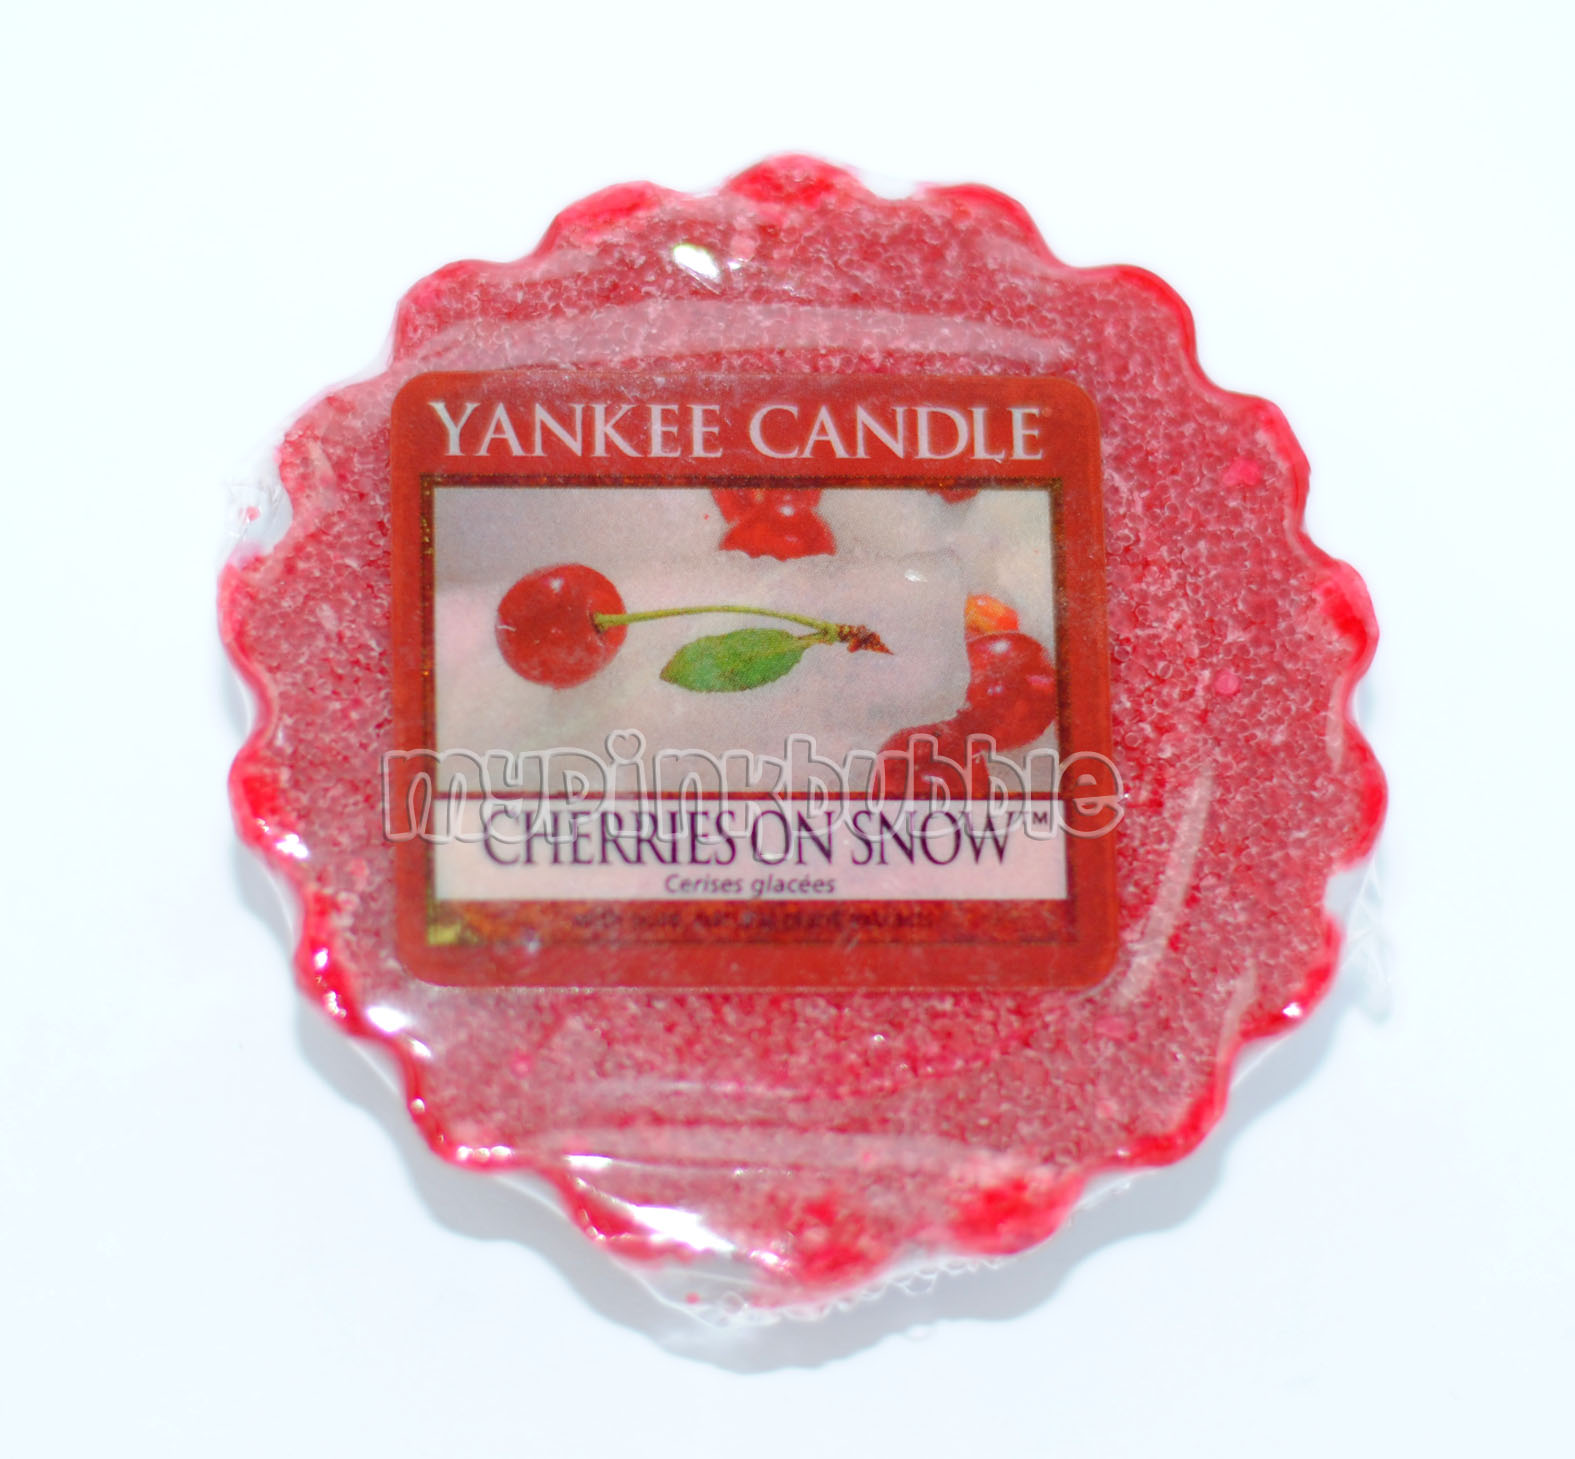 Yankee Candle Cherries on snow